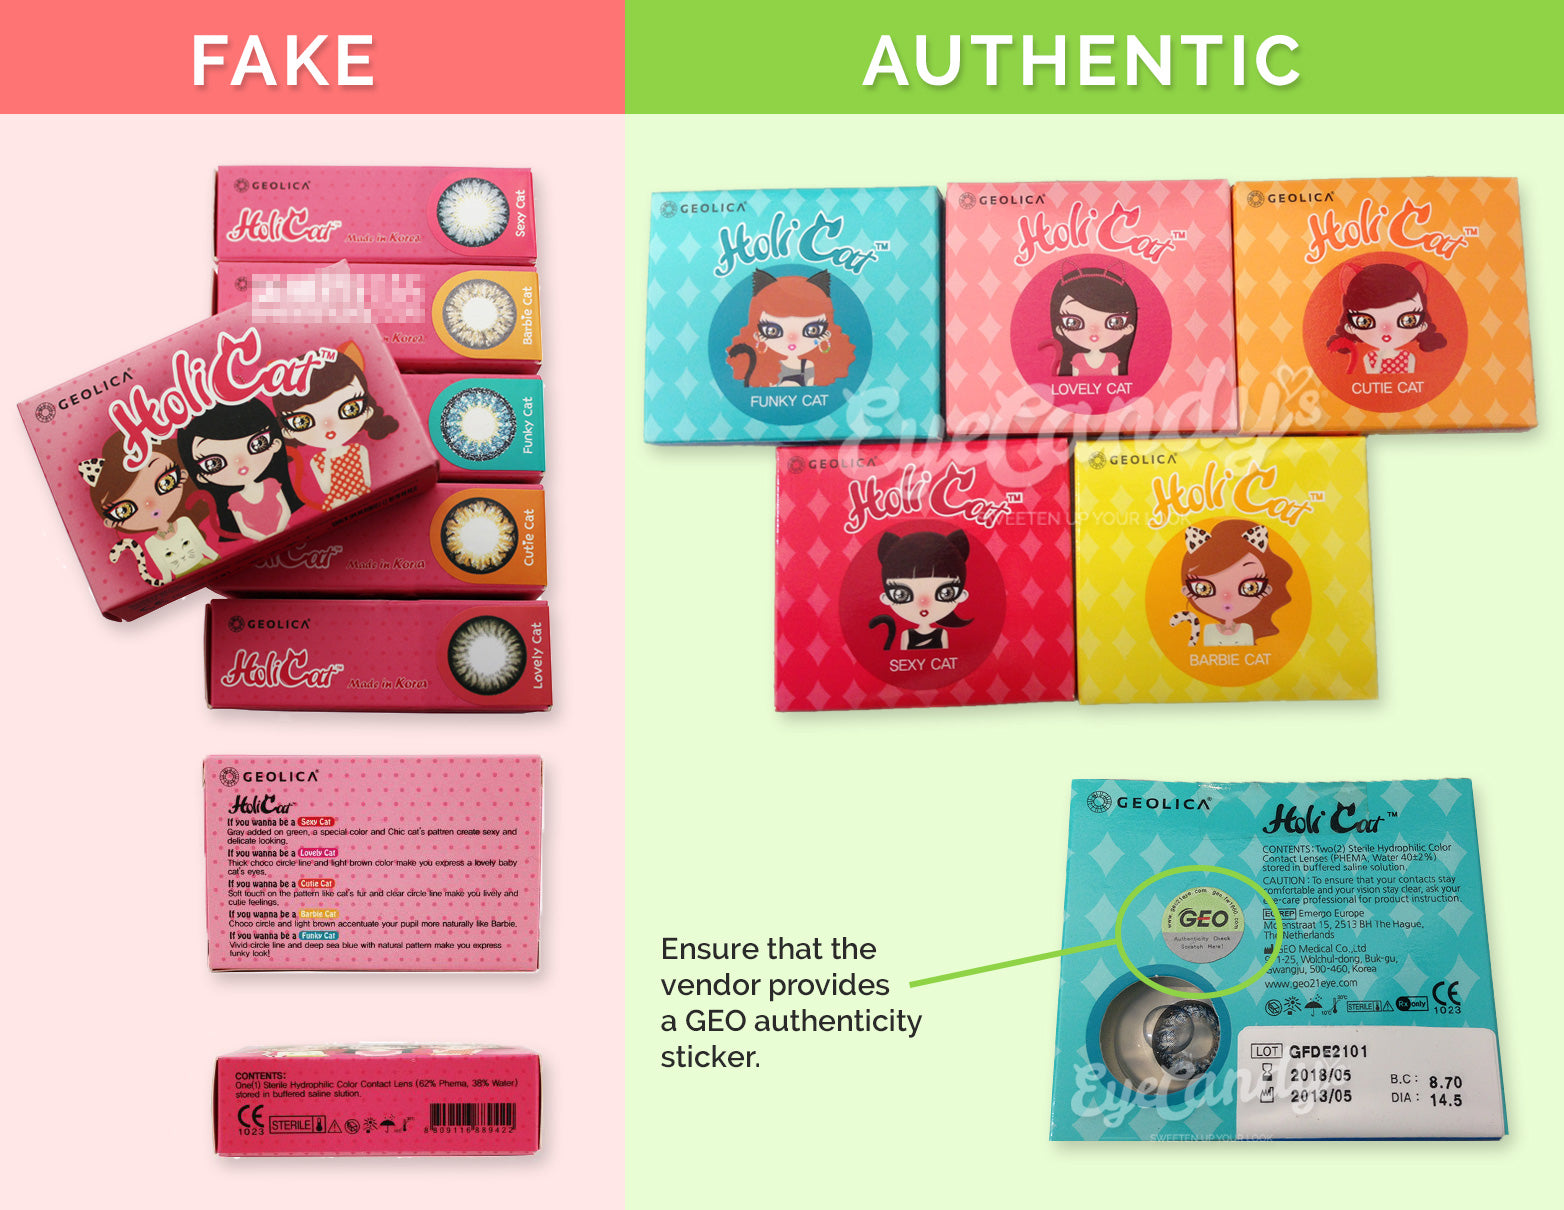 How to spot fake GEOLICA HoliCat color contact lenses